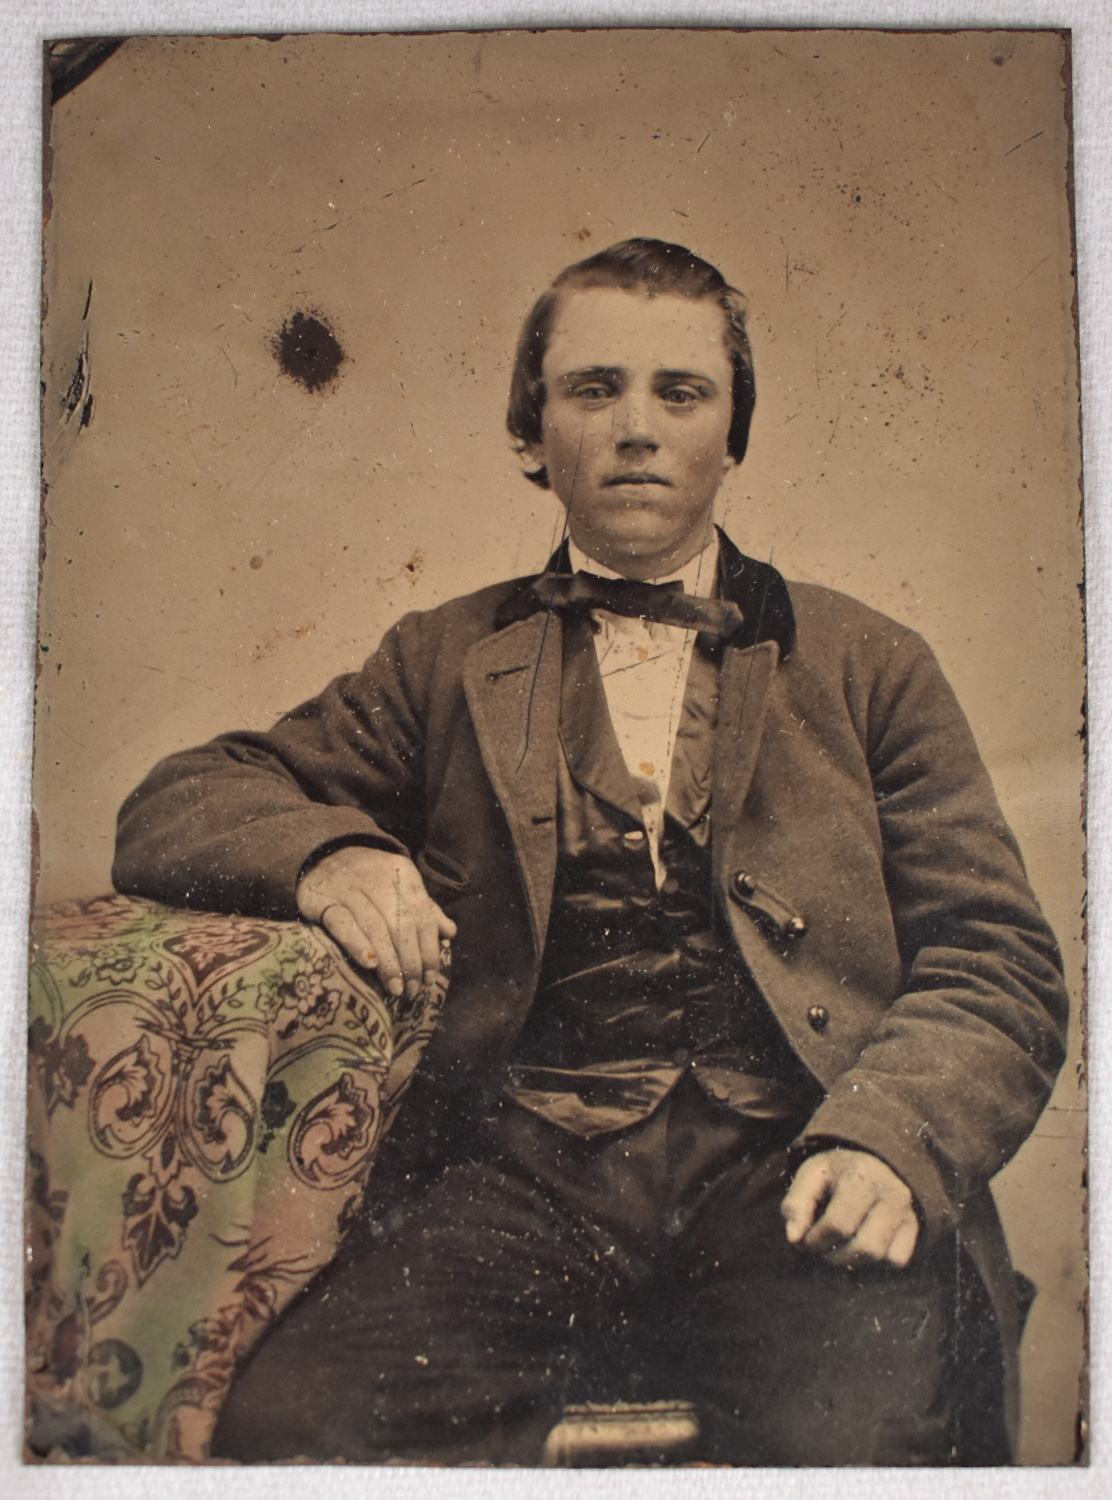 dating tintypes by clothing